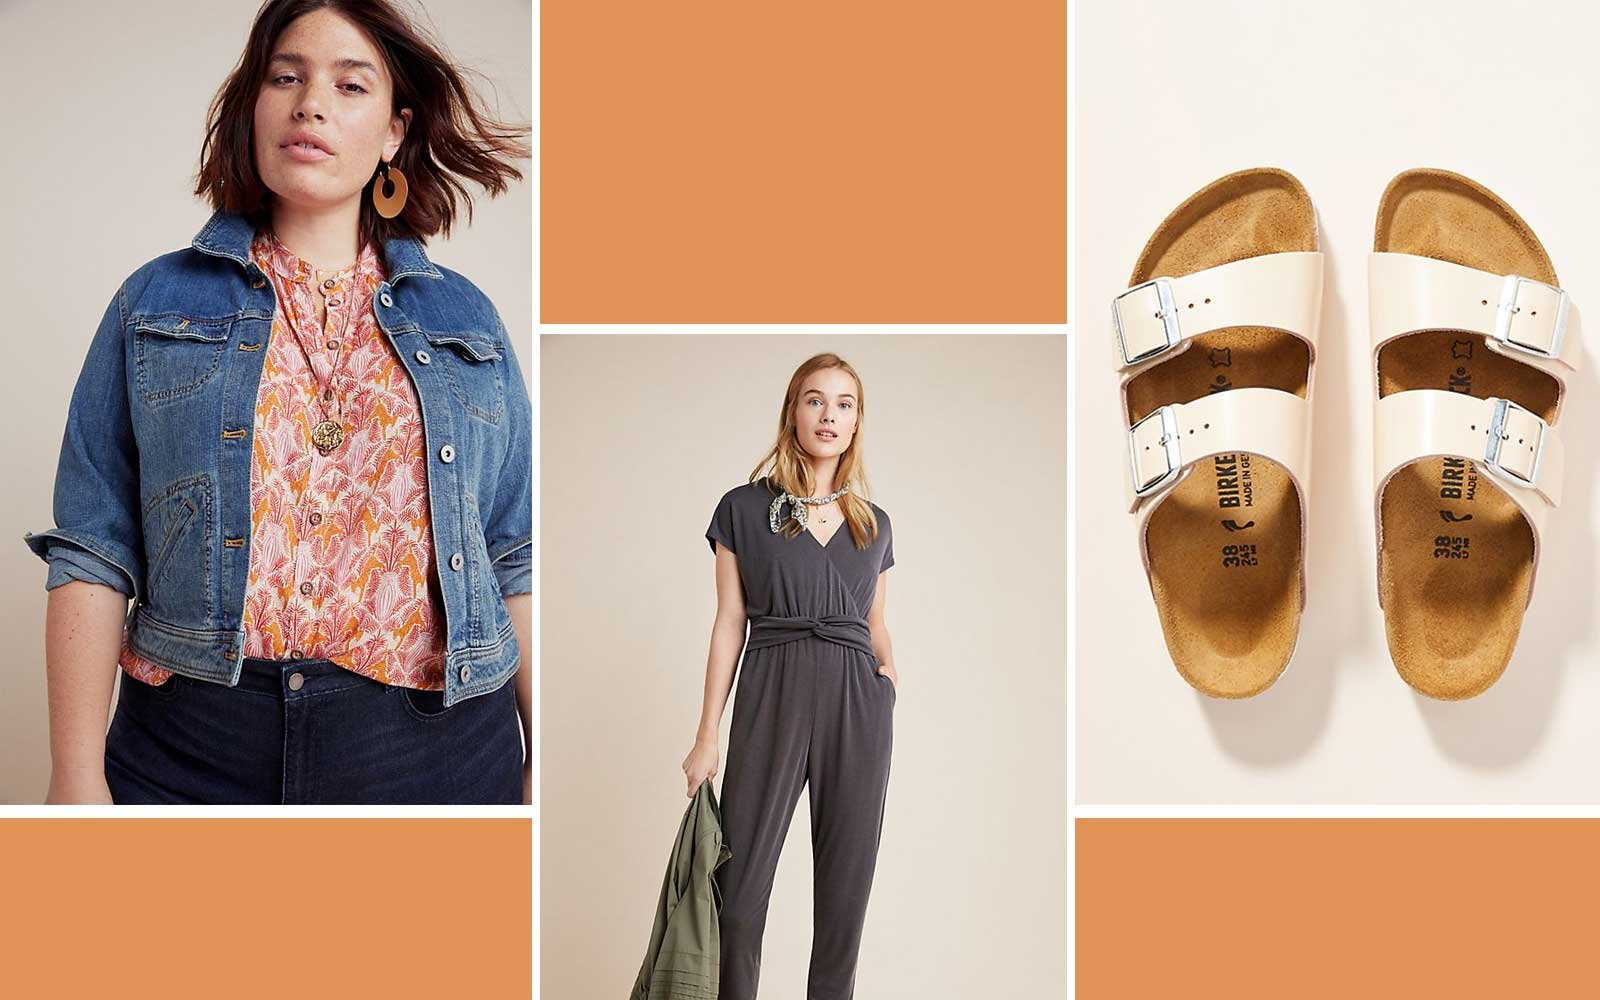 Anthropologie's Travel Shop Is Chock-full of Comfy Airport Outfit Ideas